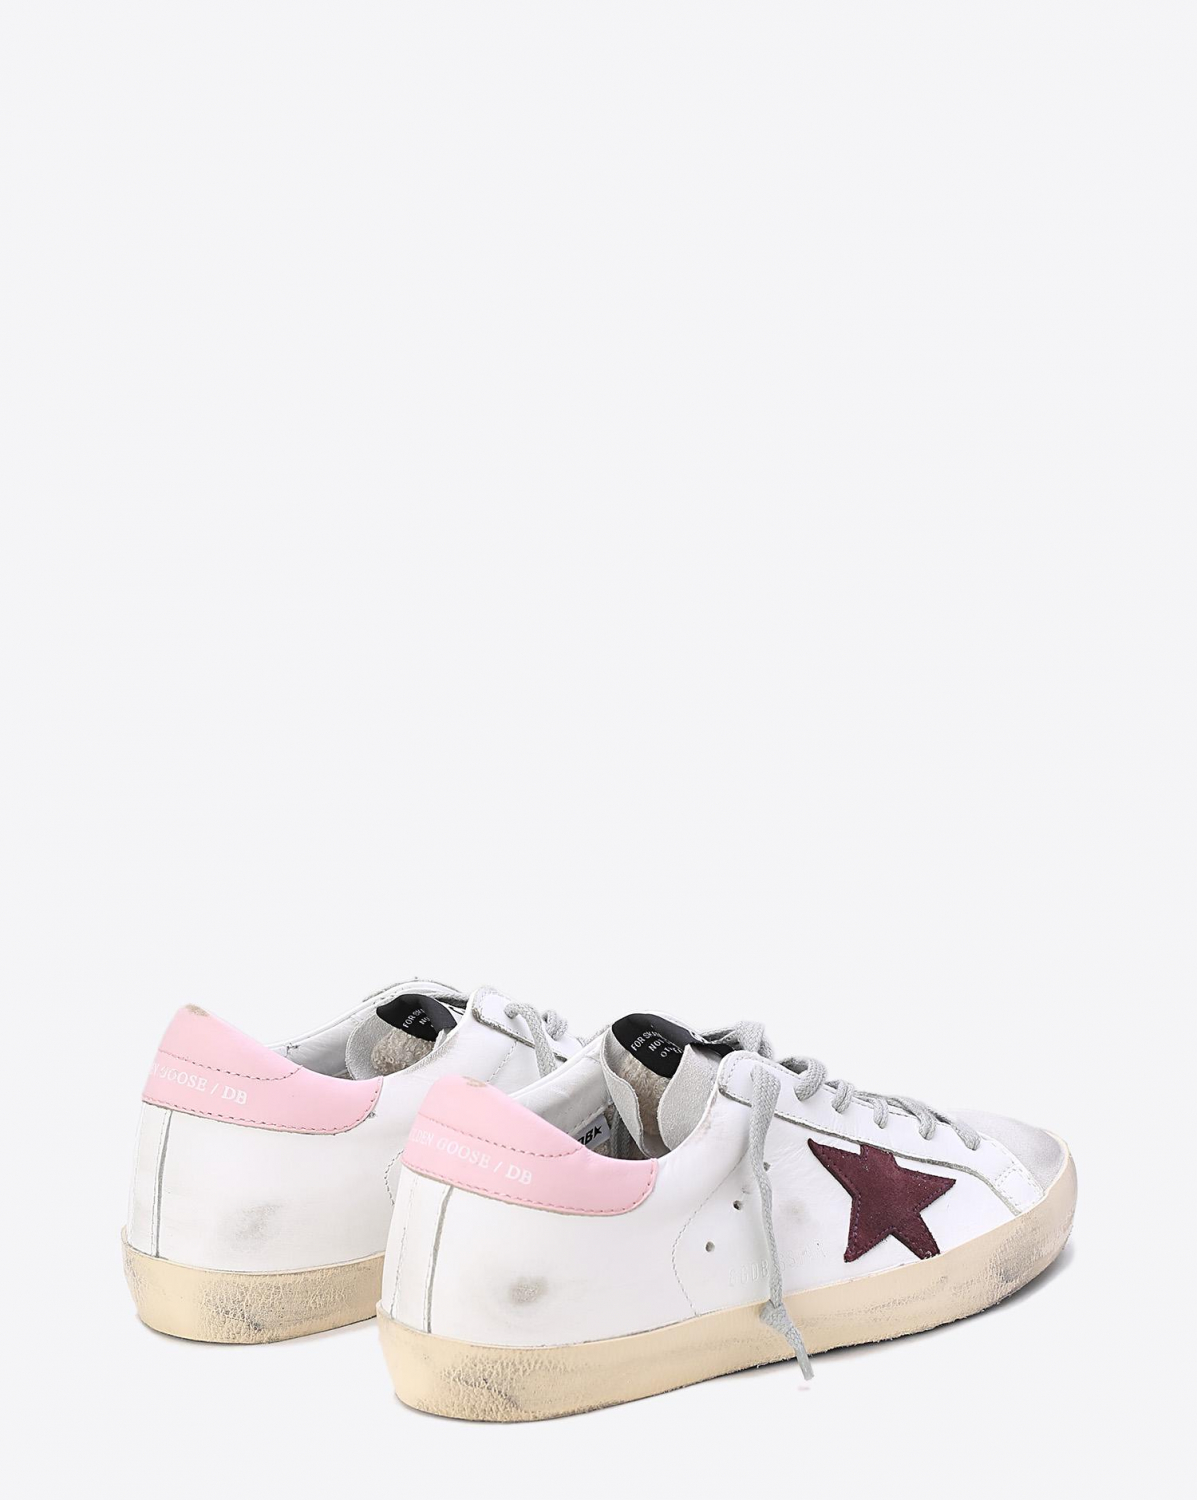 Golden Goose Woman Collection Sneakers Superstar White Pink Bordeaux Star